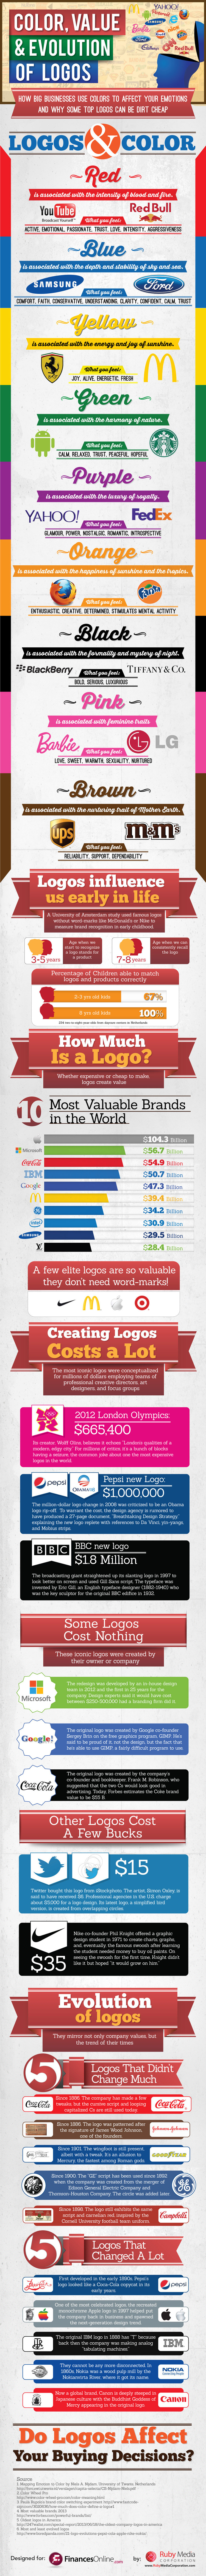 Importance of Color When Designing a Logo for Your Company (Infographic)